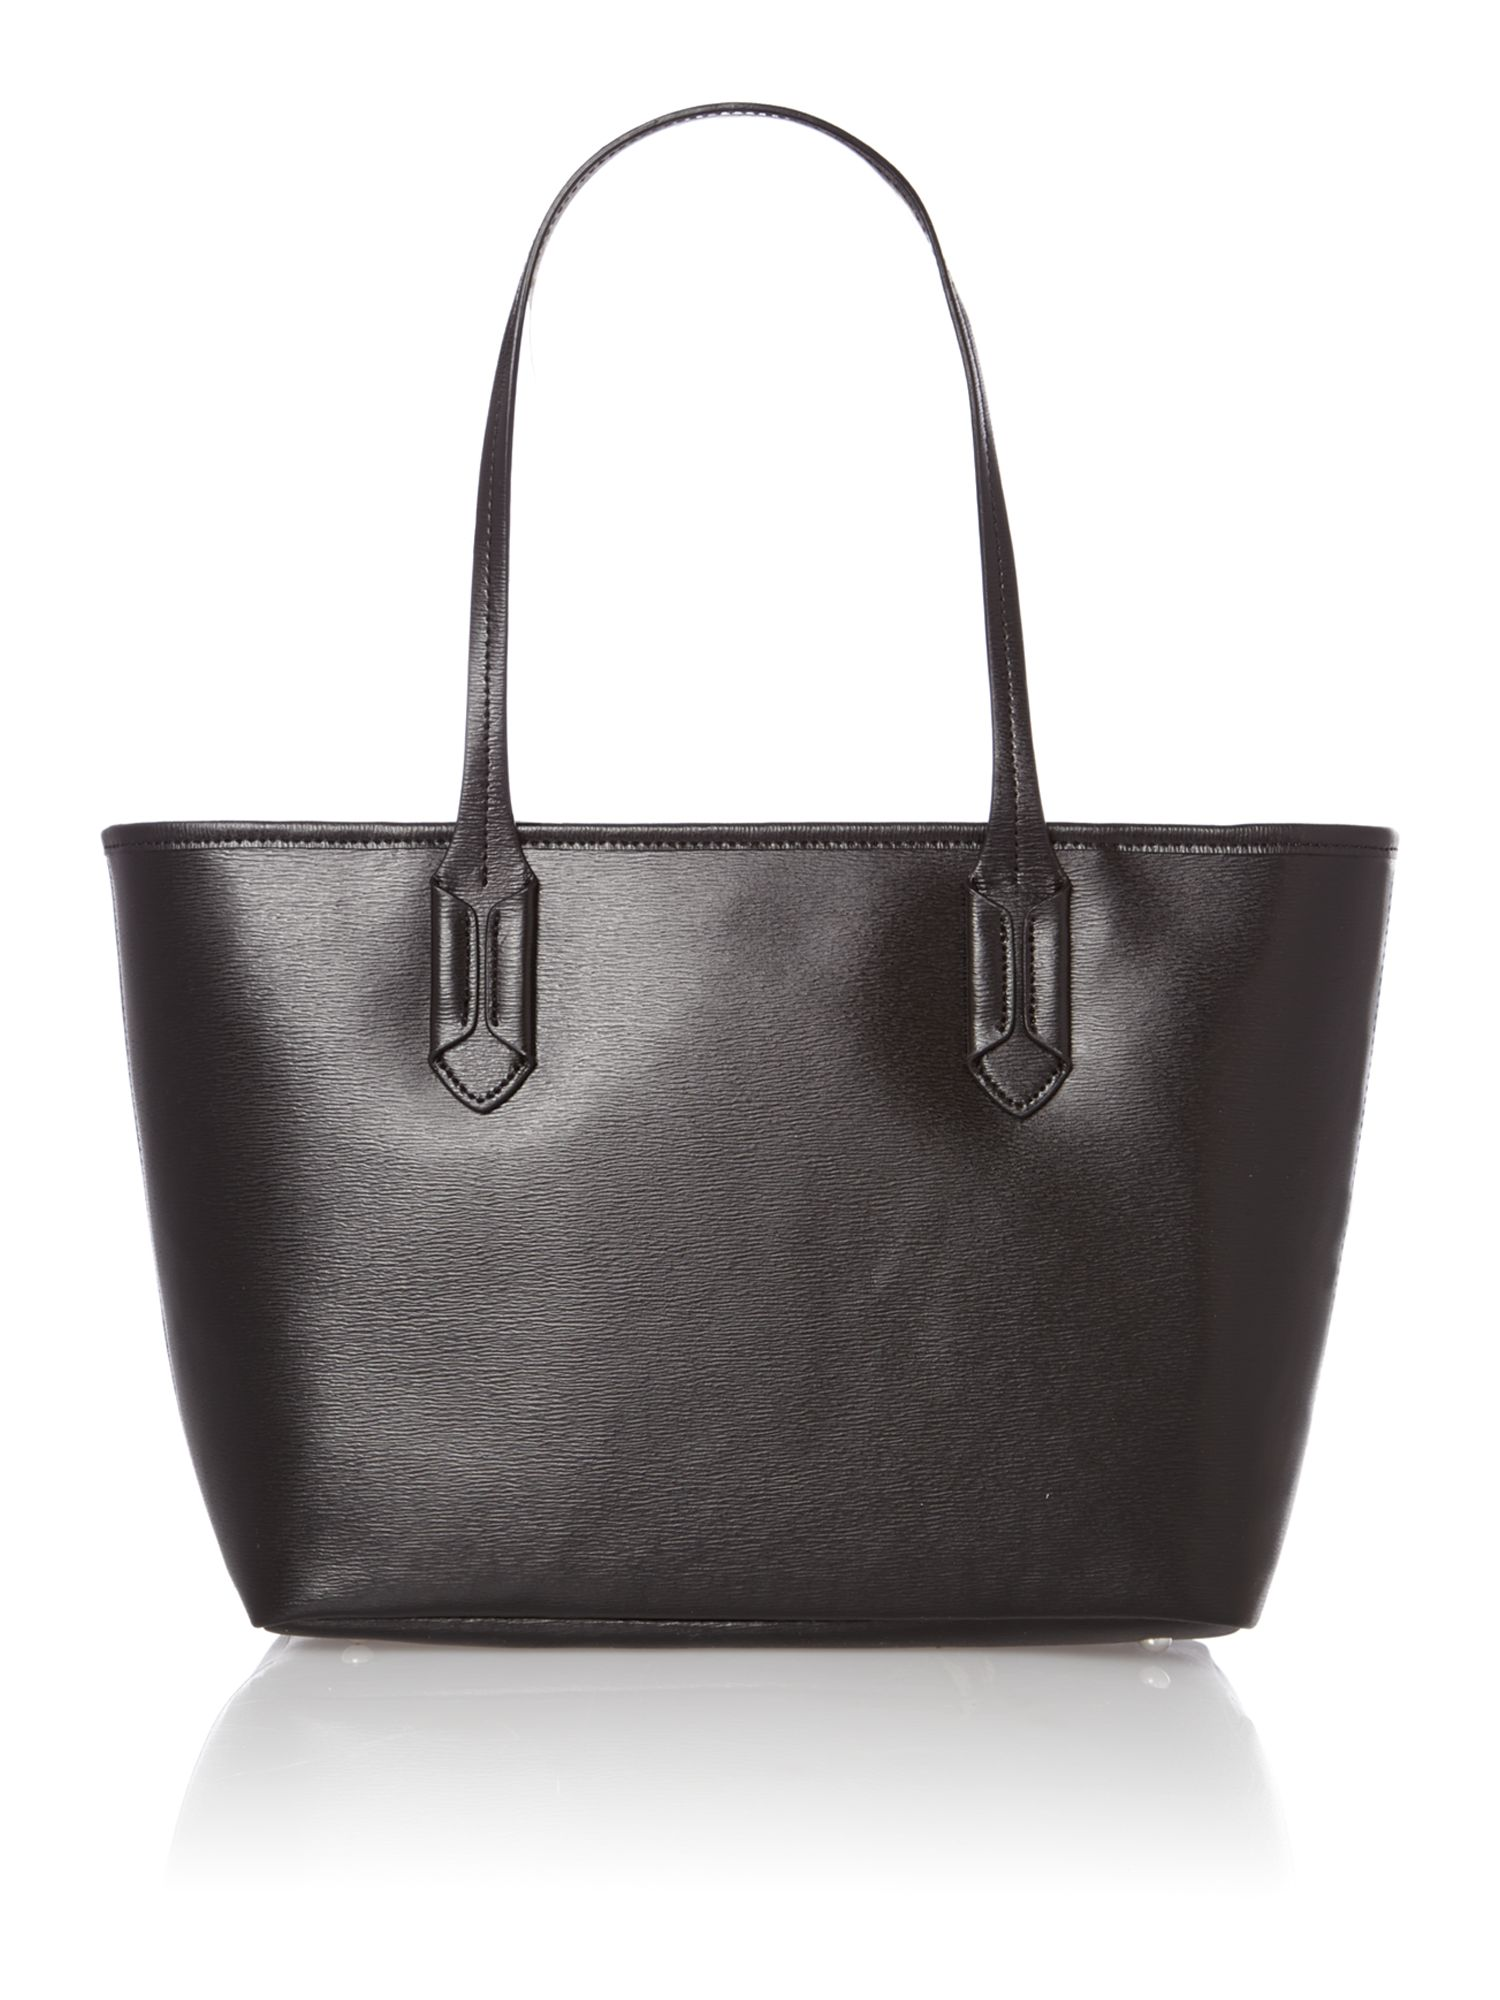 Tate black medium tote bag